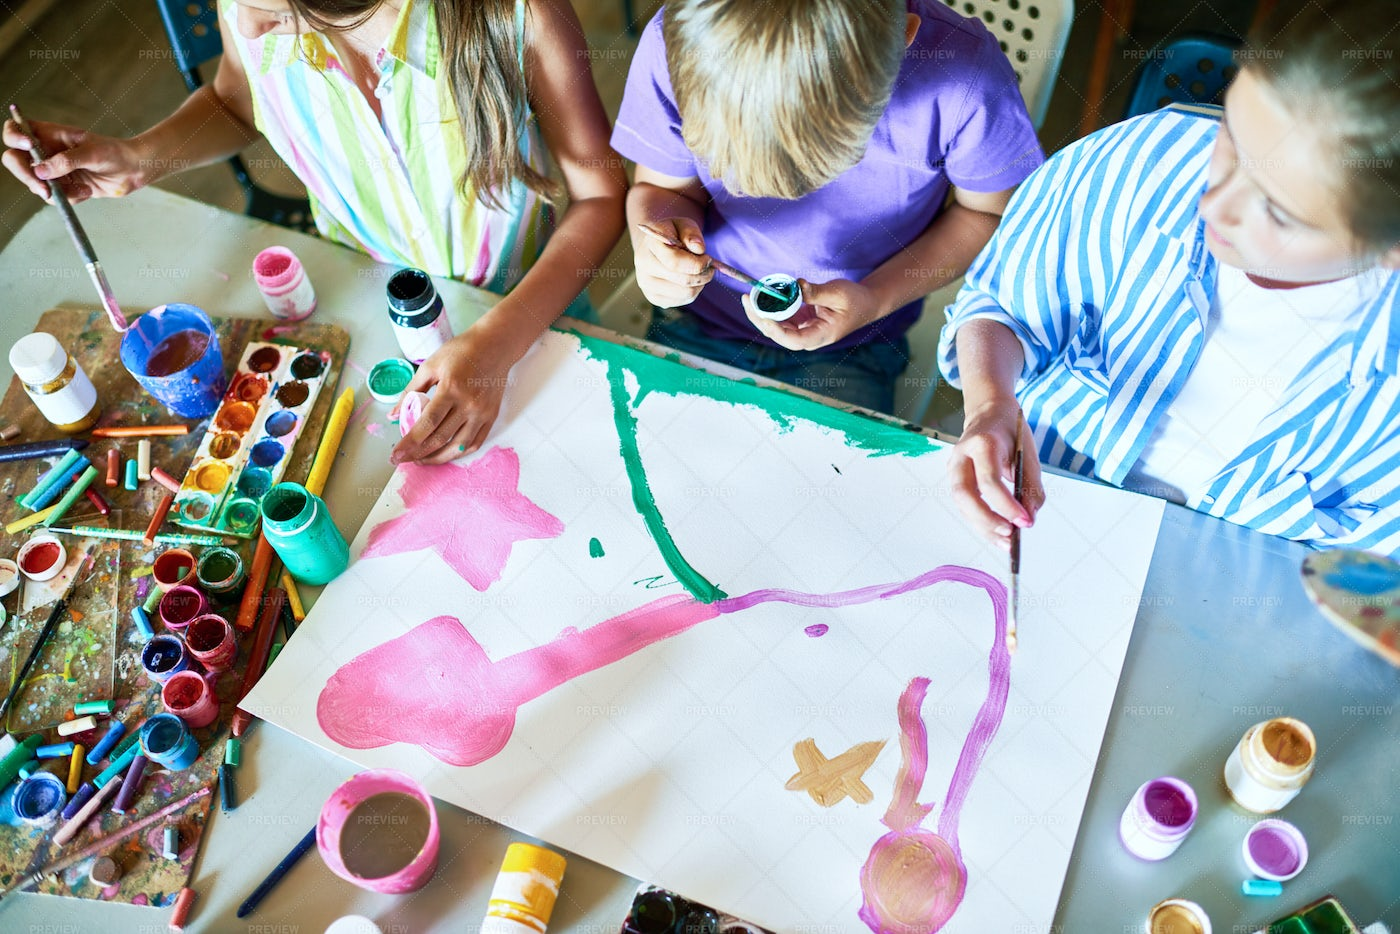 Group Of Children Painting Picture...: Stock Photos